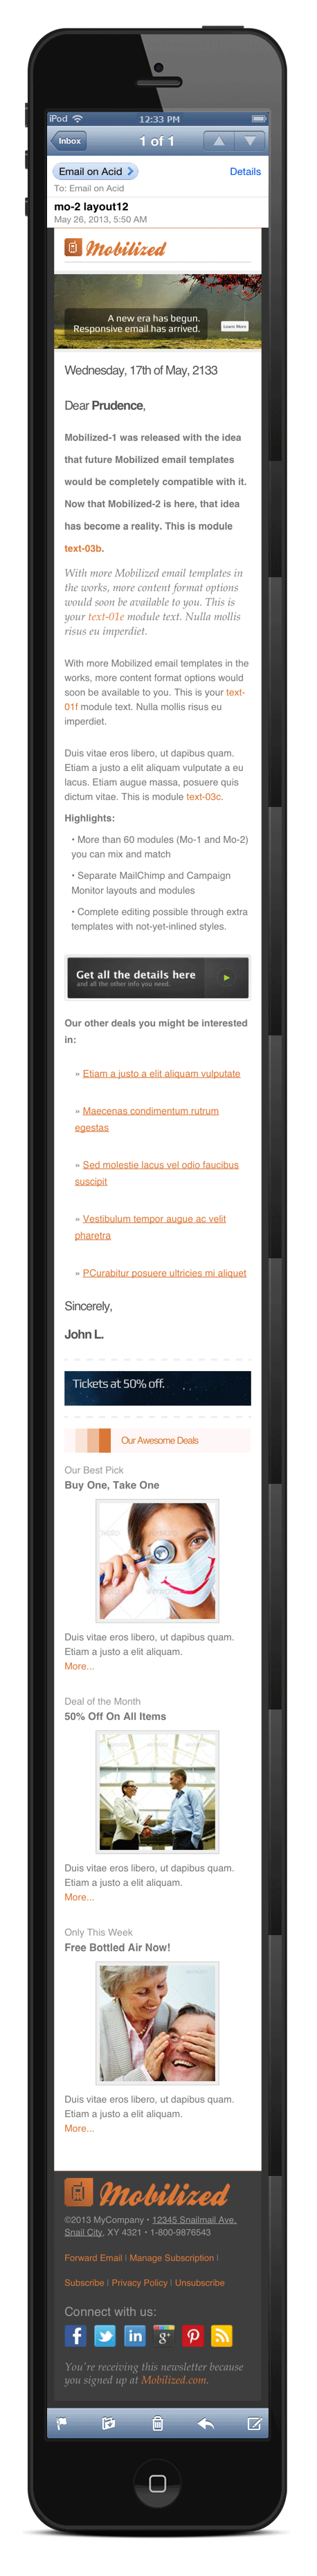 Mobilized-2 - Responsive & Modular Email Templates - Screenshot in an iPhone 5.